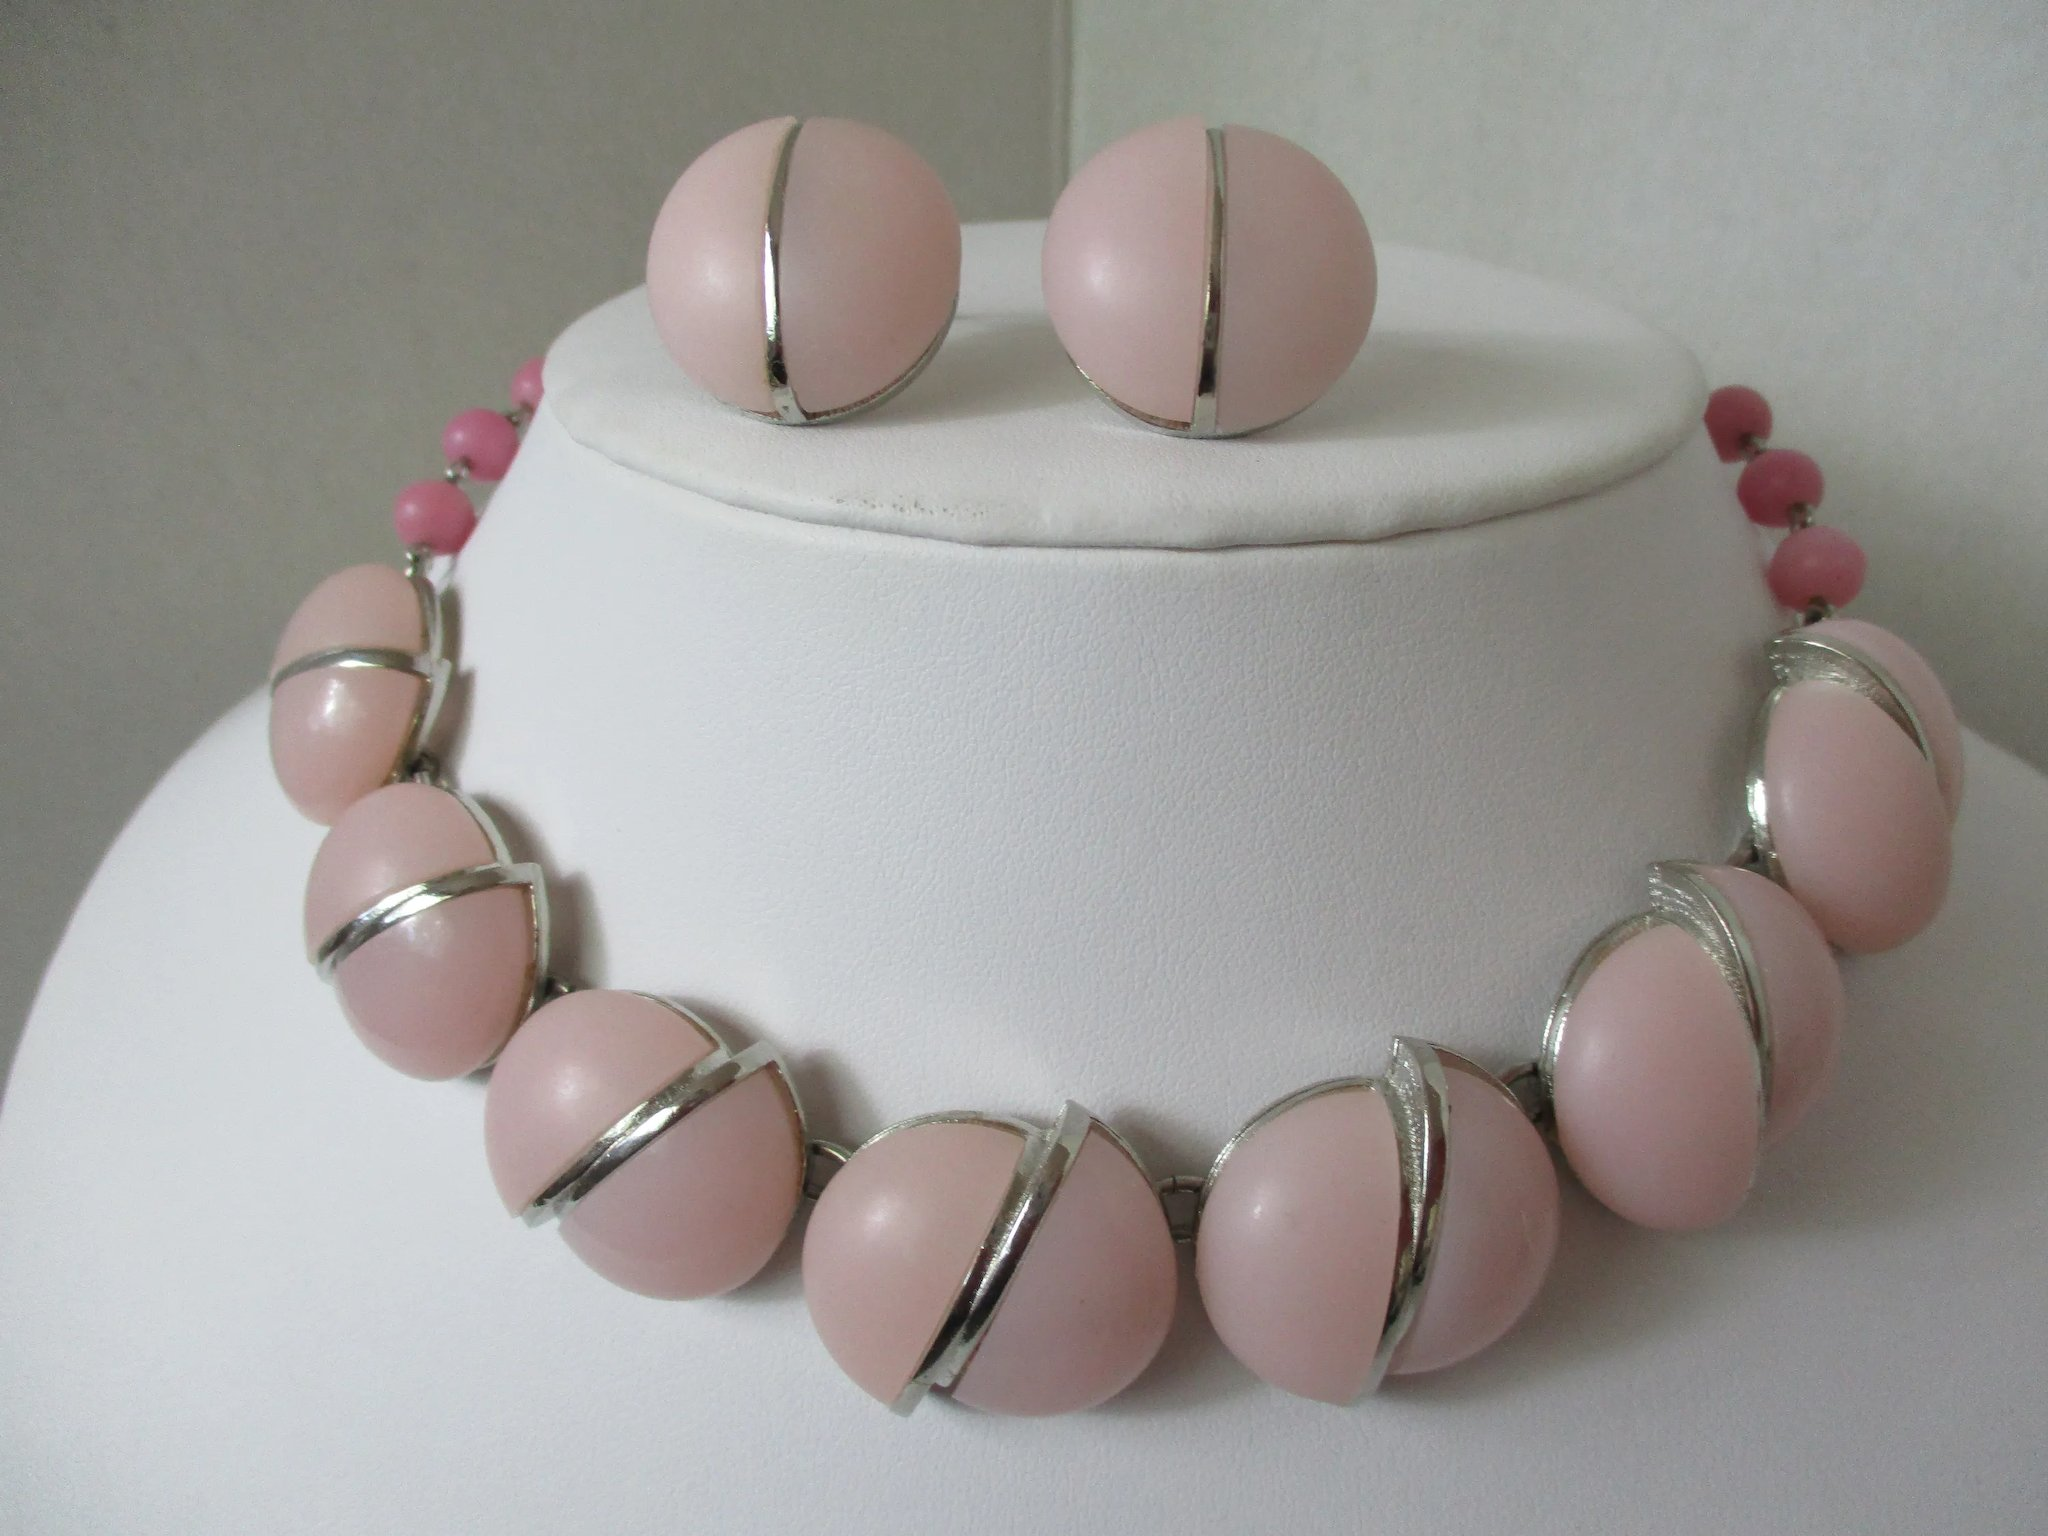 Triad Soft Pink Lucite Sliced Rounds Necklace Earrings Set Vintage